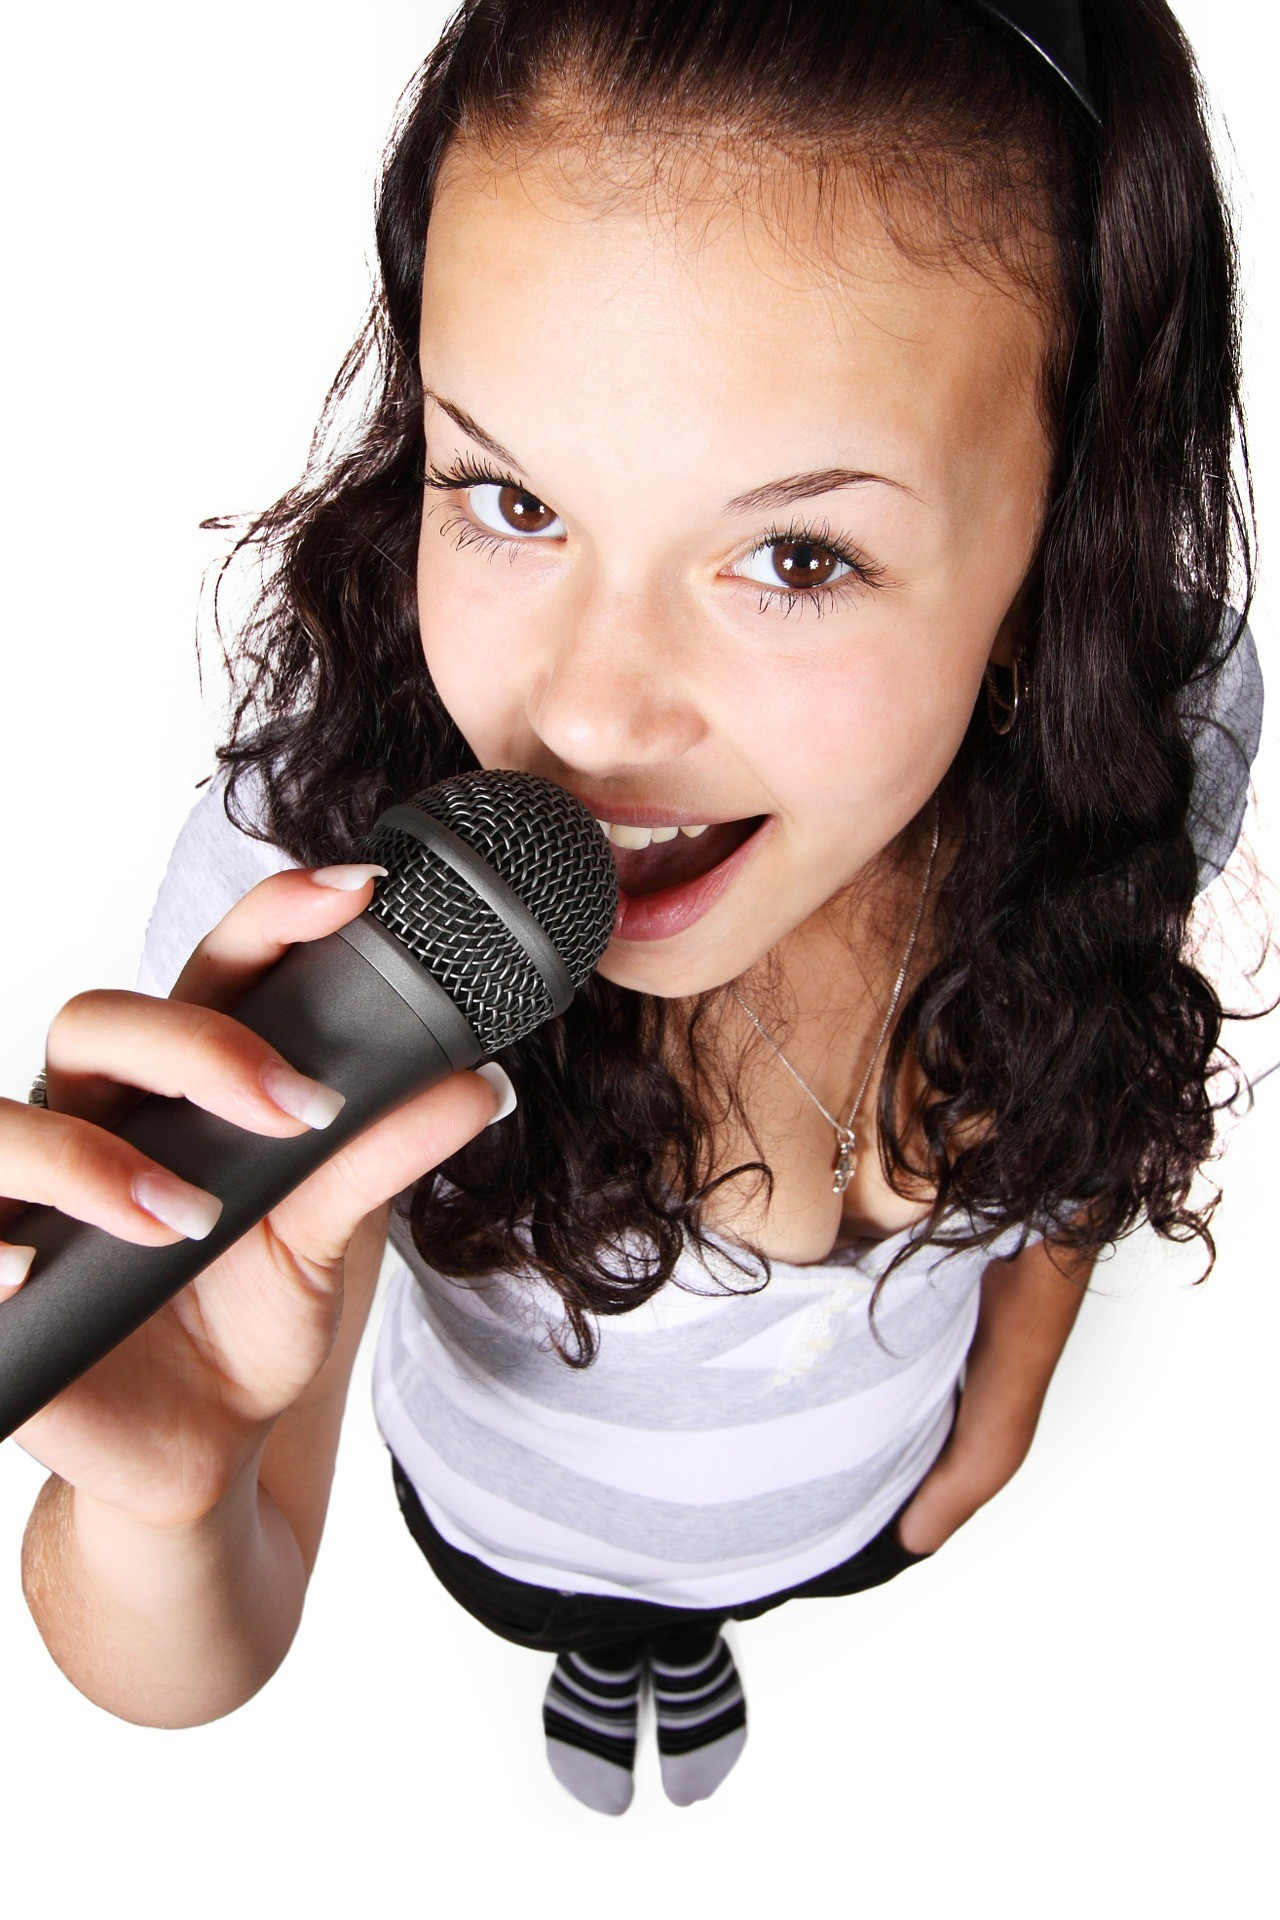 Photograph of a girl singing a song